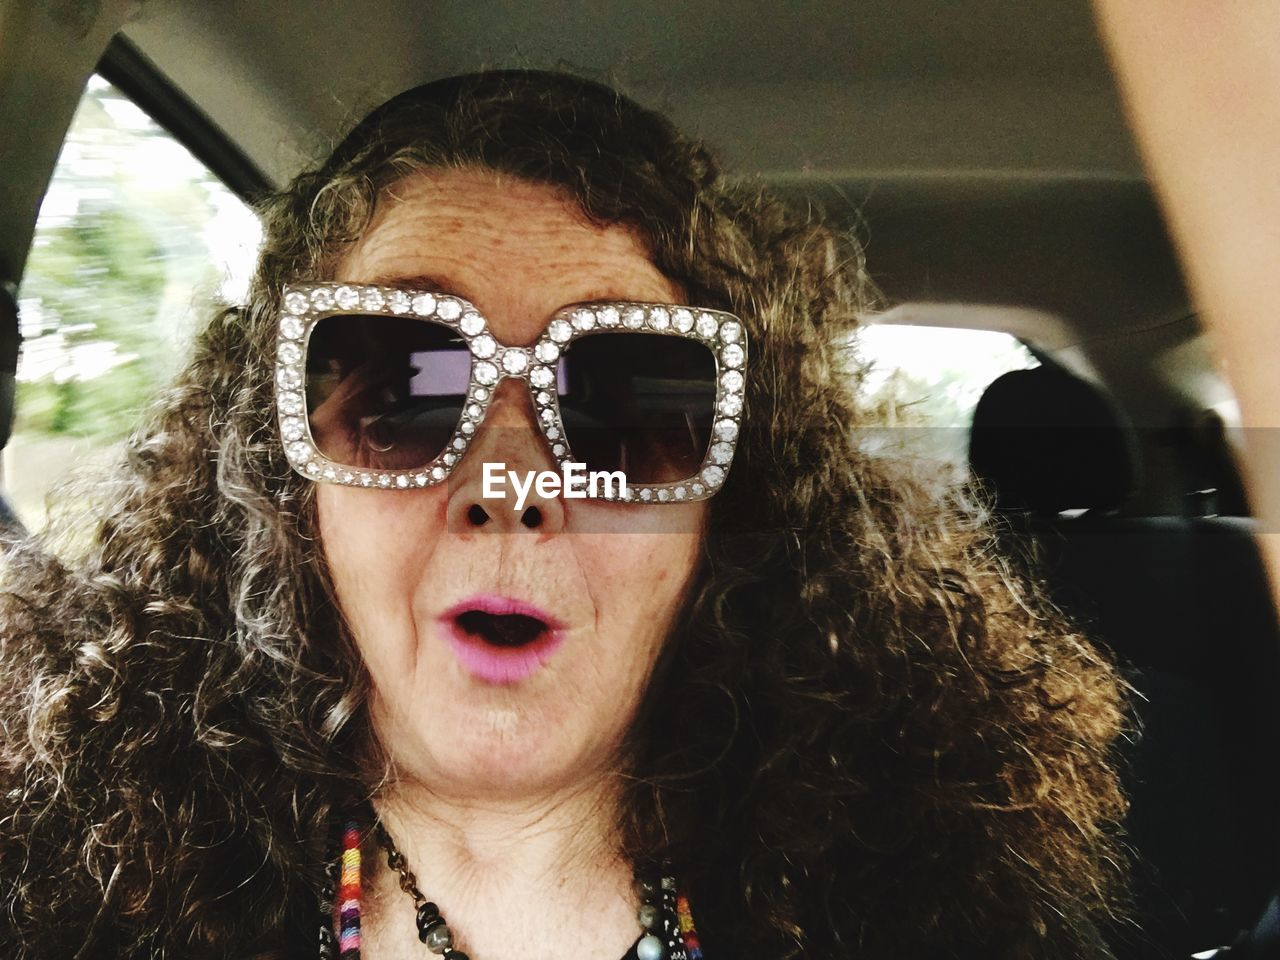 Portrait of woman wearing novelty glasses while sitting in car